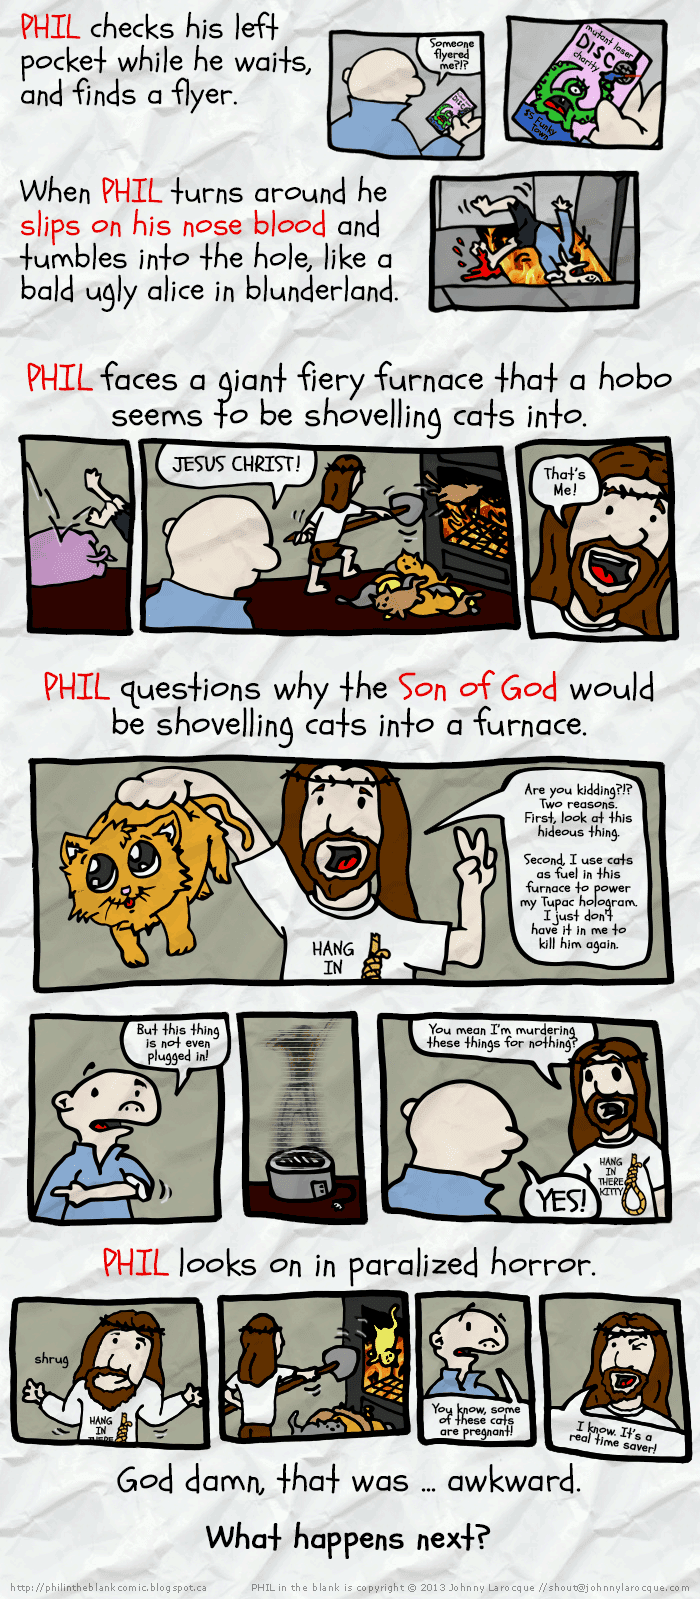 PHIL checks his left pocket while he waits, and finds a flyer. When he turns around he slips on his nose blood and tumbles into the hole, like a bald ugly alice in blunderland. PHIL faces a giant furnace that a hobo is shovelling cats into.  PHIL says JESUS CHRIST! (Christ turns around) That's me! PHIL questions why the son of God would be shovelling cats into a furnace.  Christ: Are you kidding?!? Two reasons. First, look at these hideous things. Super cute kitten held by scruff. Second, I use them as fuel in this furnace to power my Tupac hologram. I just don't have it in me to kill him a again.  PHIL says but that hologram is not even plugged in.  Christ says You mean I'm murdering these cats for nothing? Phil says YES!  Christ shrugs, starts shovelling again.  PHIL looks horrified.  Phil says You know some of these cats are pregnant, right? Christ says I know. It's a real time saver!